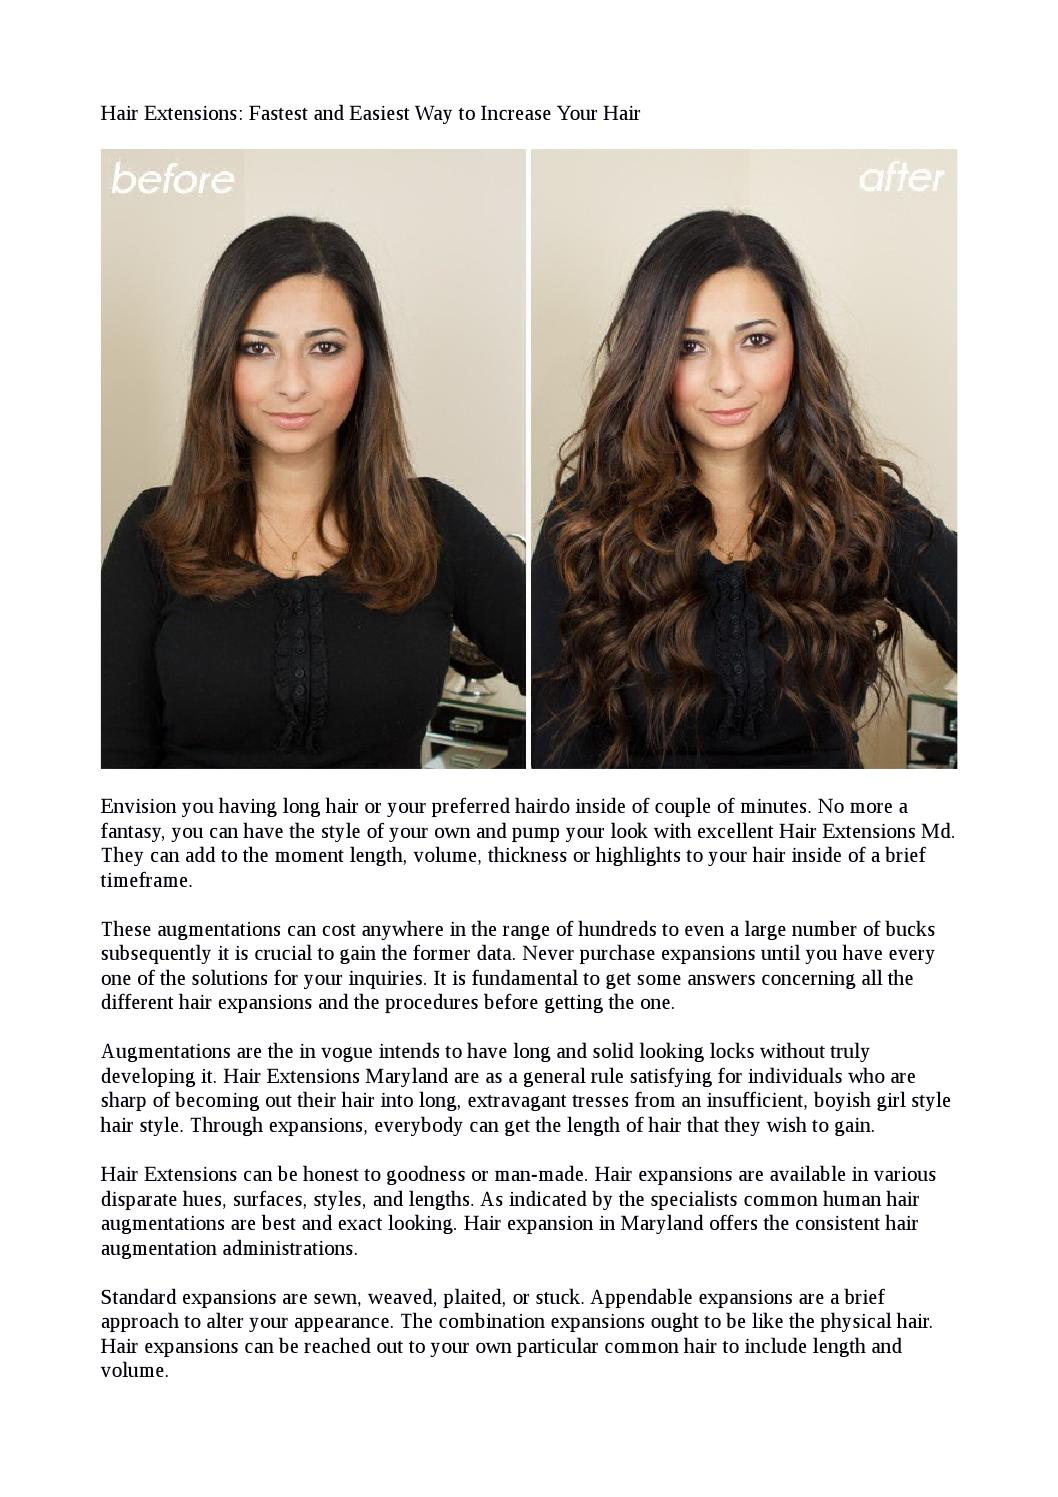 Hair Extensions Fastest And Easiest Way To Increase Your Hair By